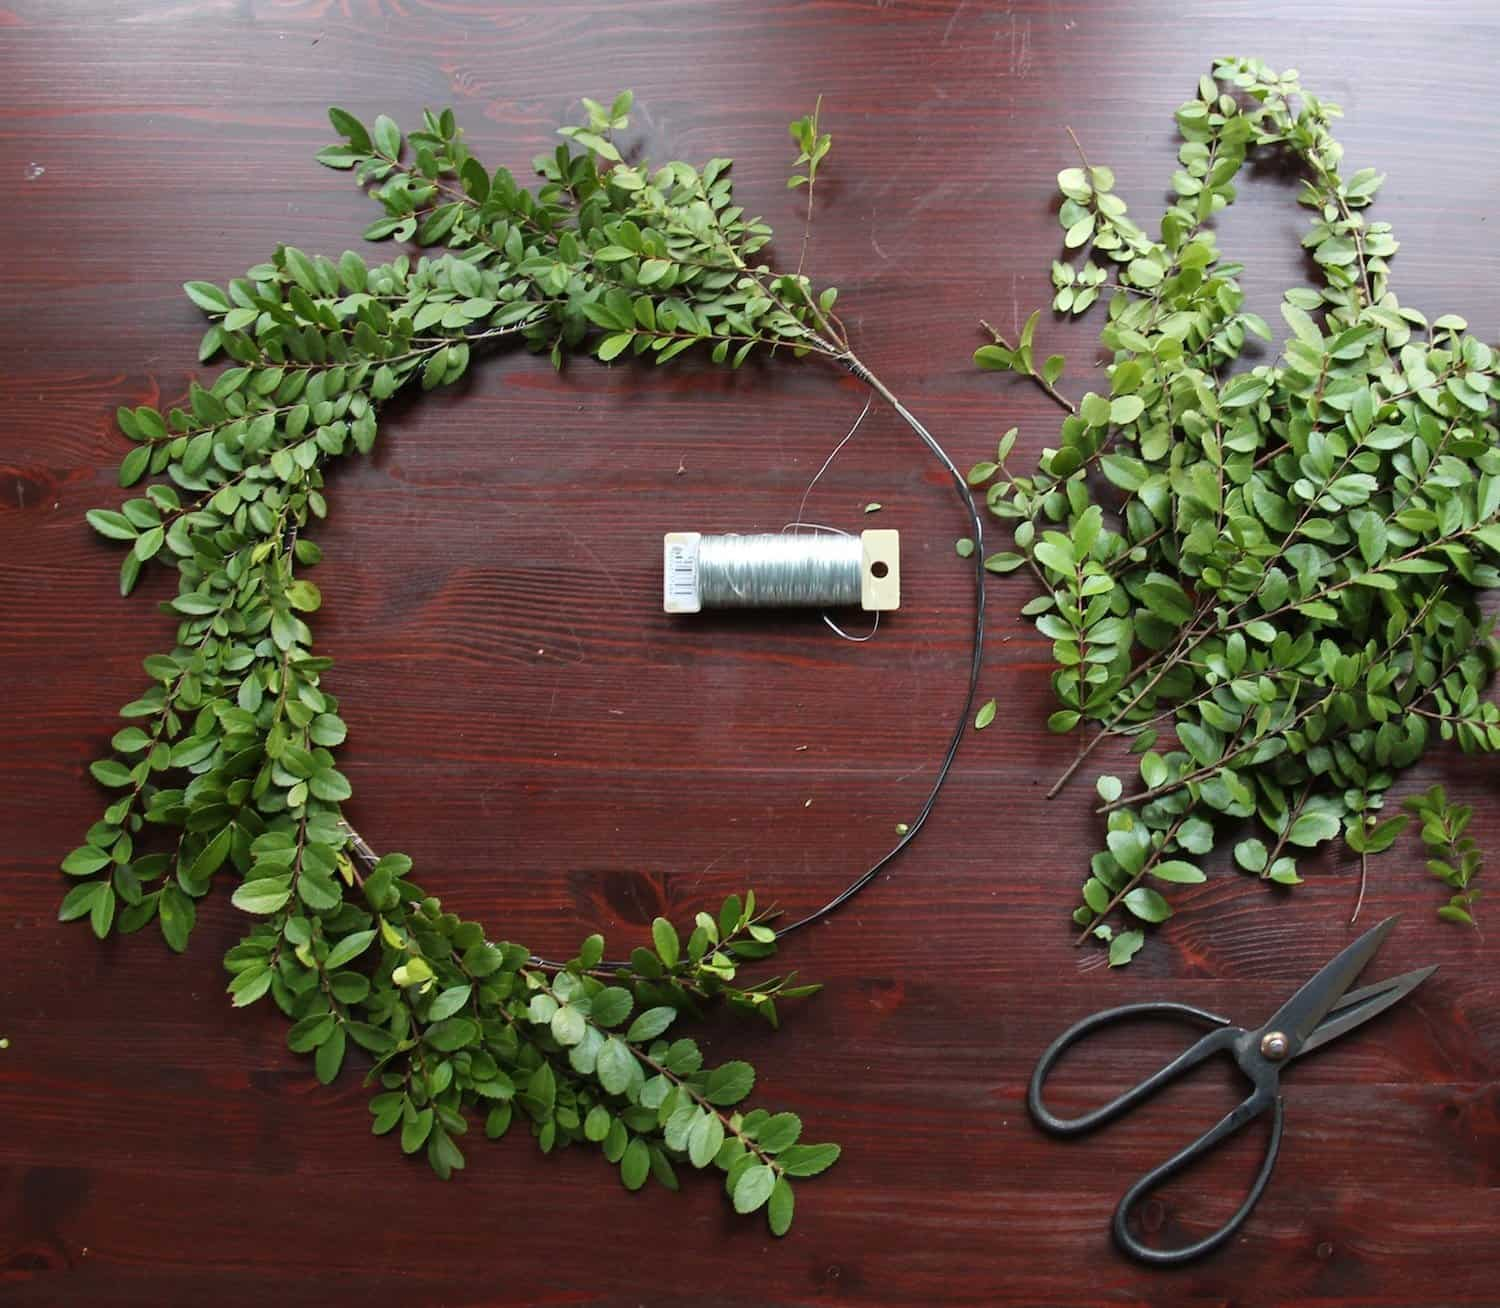 How to make a fresh christmas wreath - How To Make A Fresh Boxwood Wreath For Christmas Home For The Harvest